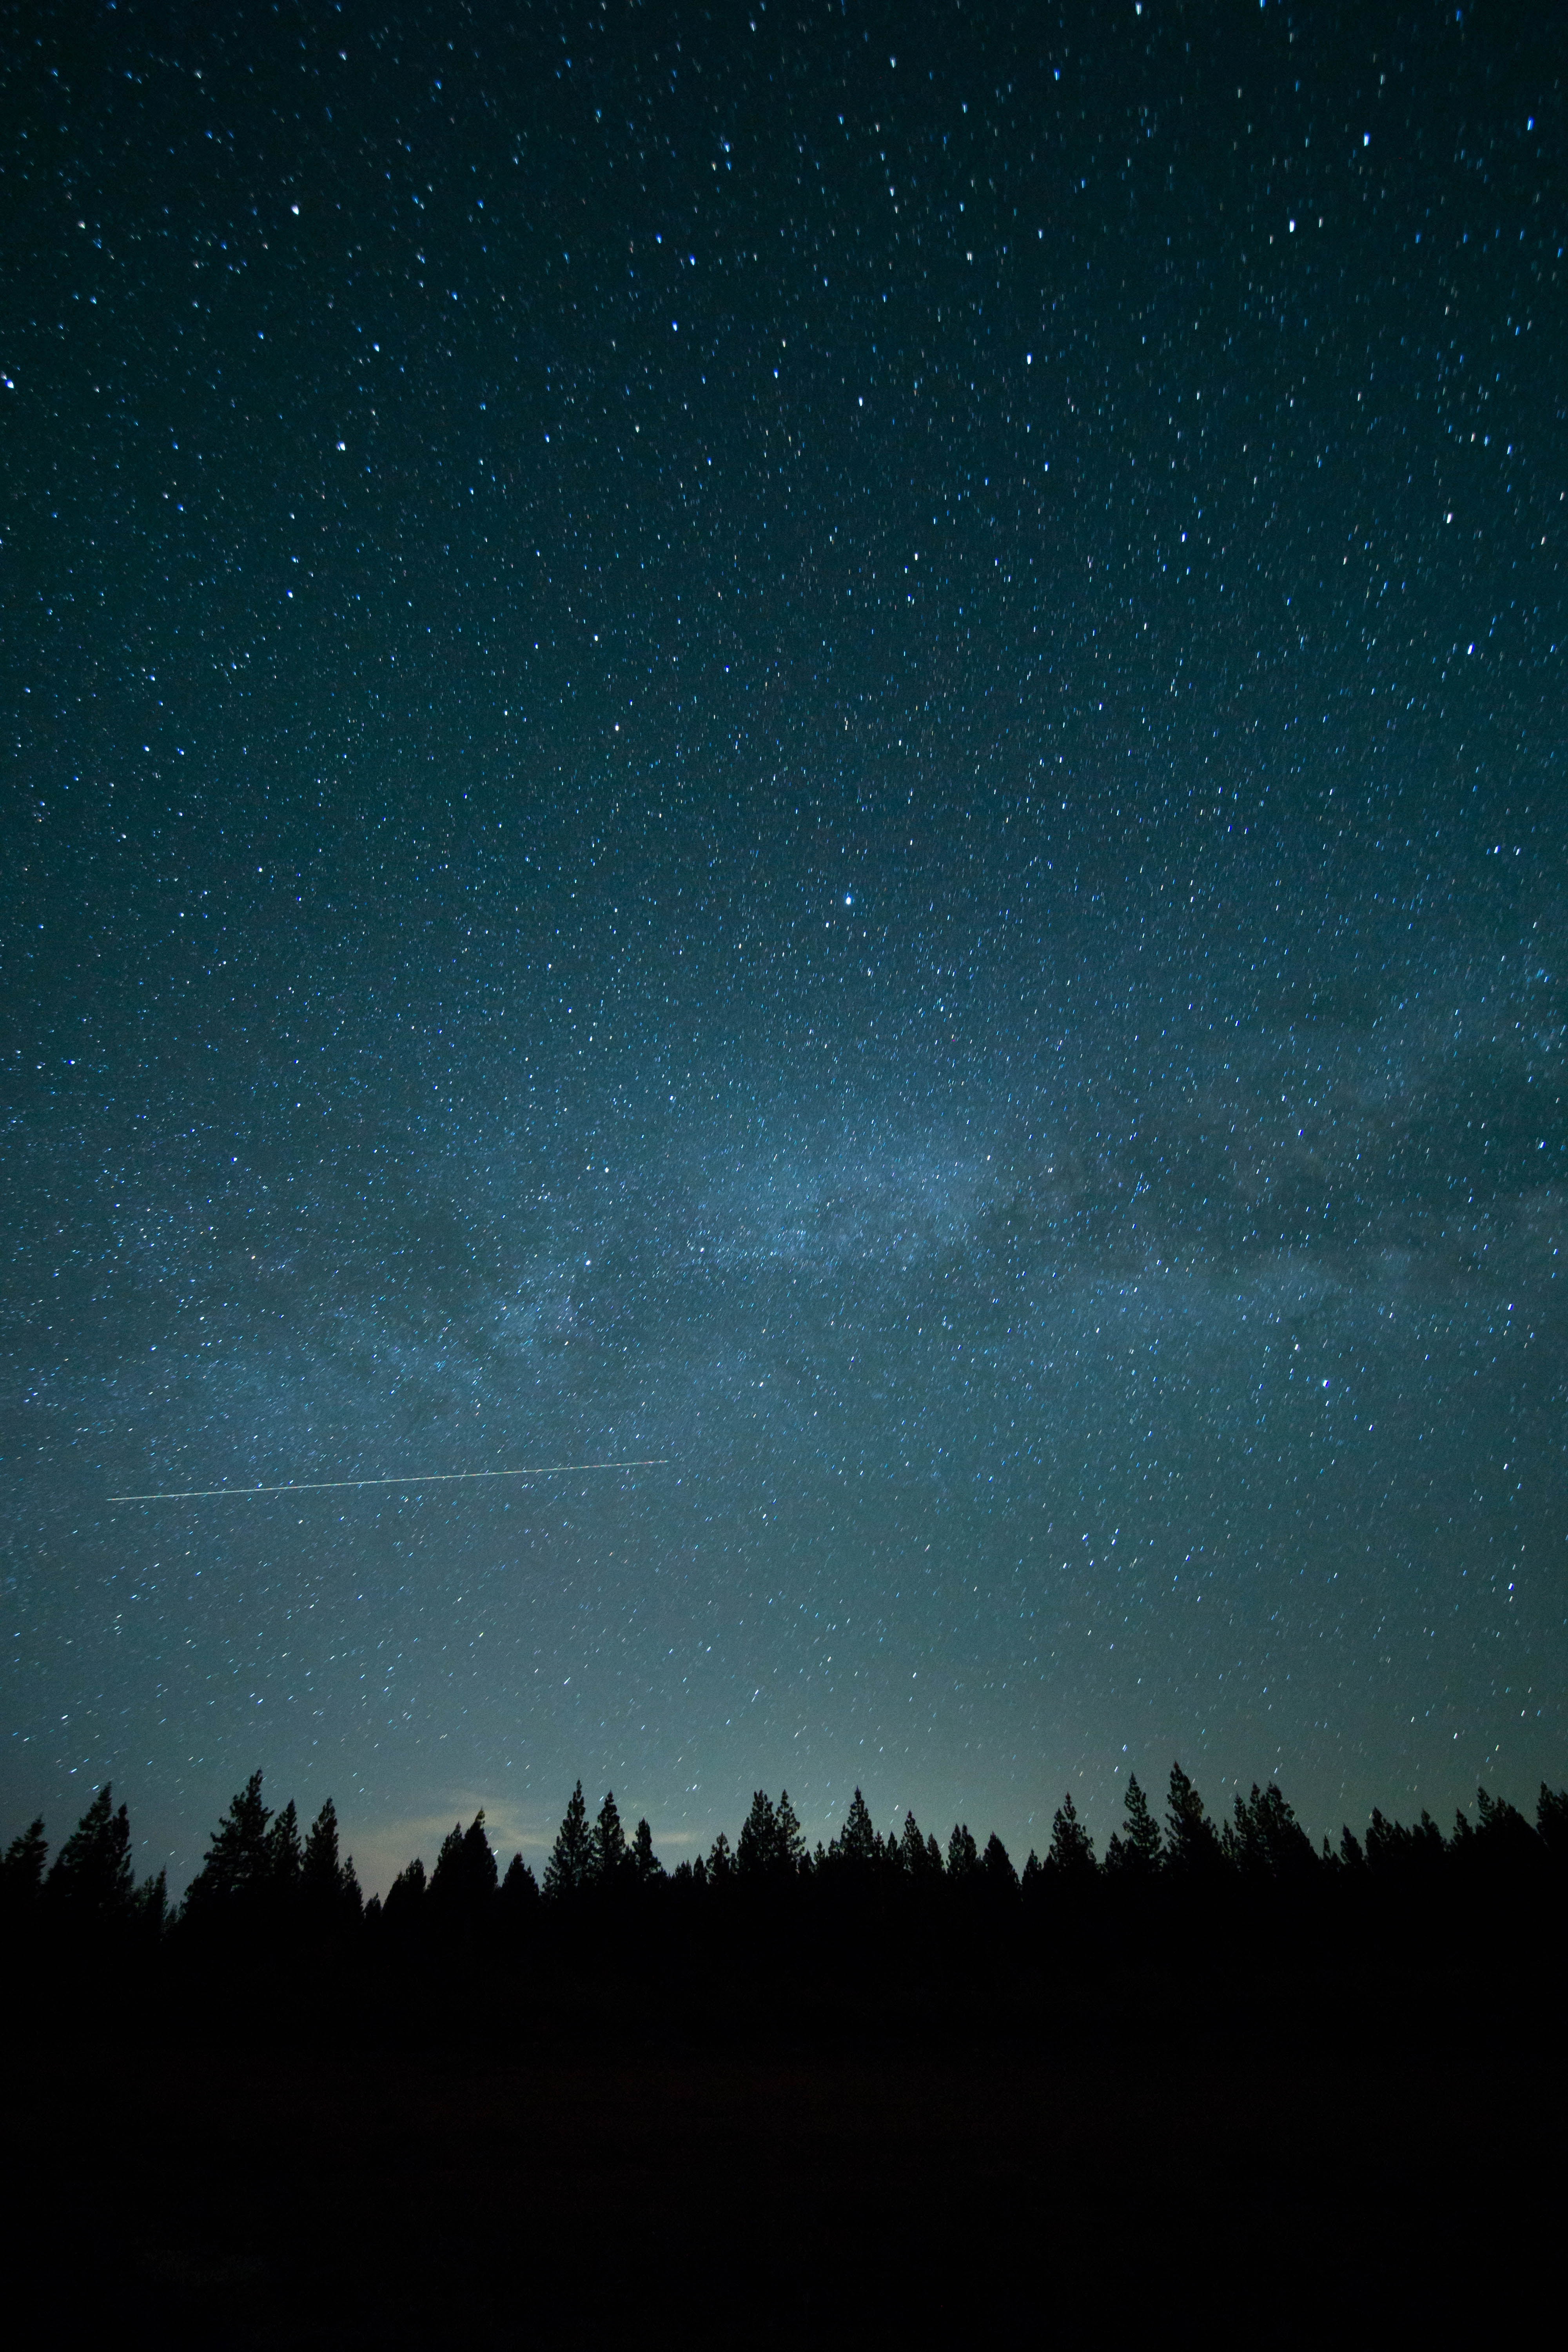 A shooting star travels across the starry night sky above the silhouette of the forest.